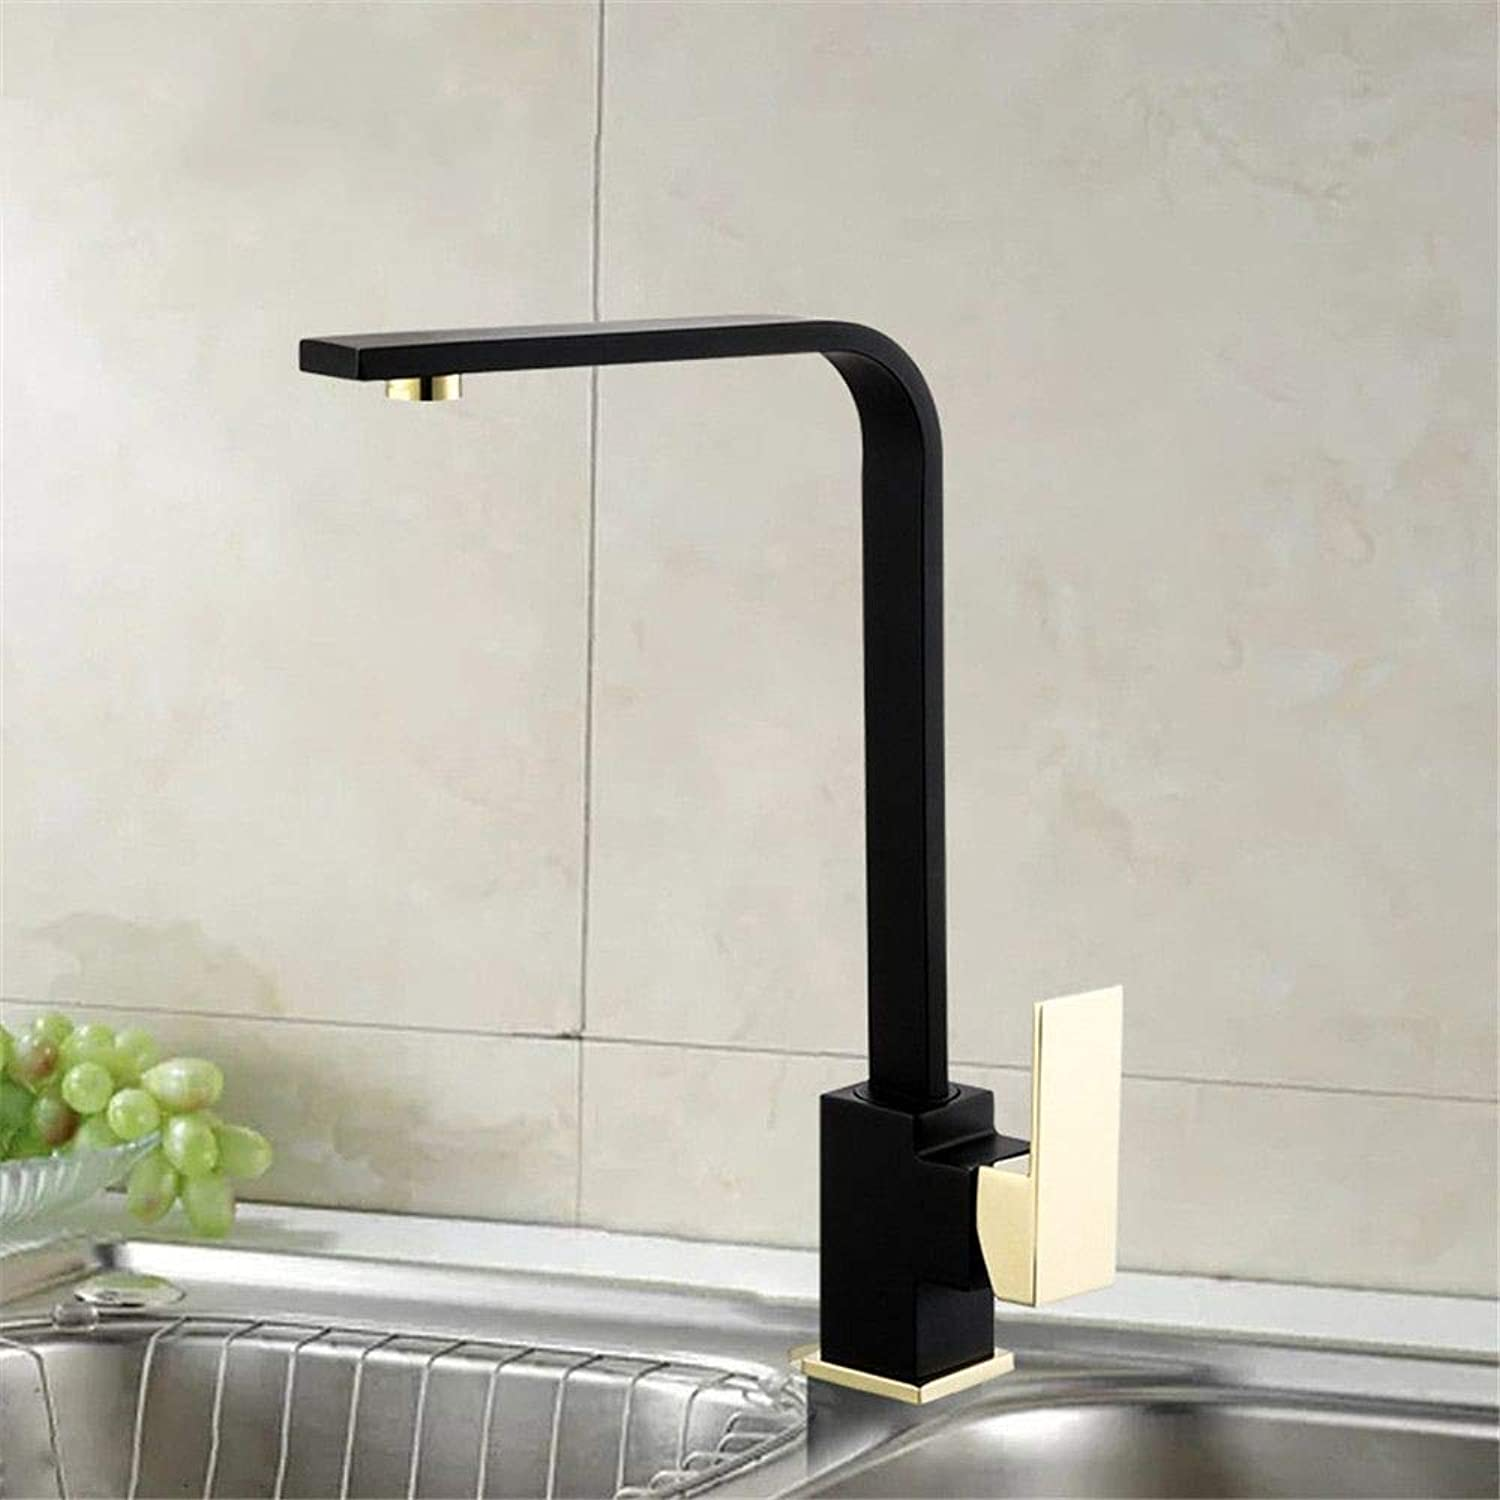 YAWEDA Copper Kitchen Faucet Kitchen Sink Faucet 7 Words Sink Copper Material Kitchen Hot and Cold Water Mixer Faucet Black Single Handle redatable Lead-Free Faucet